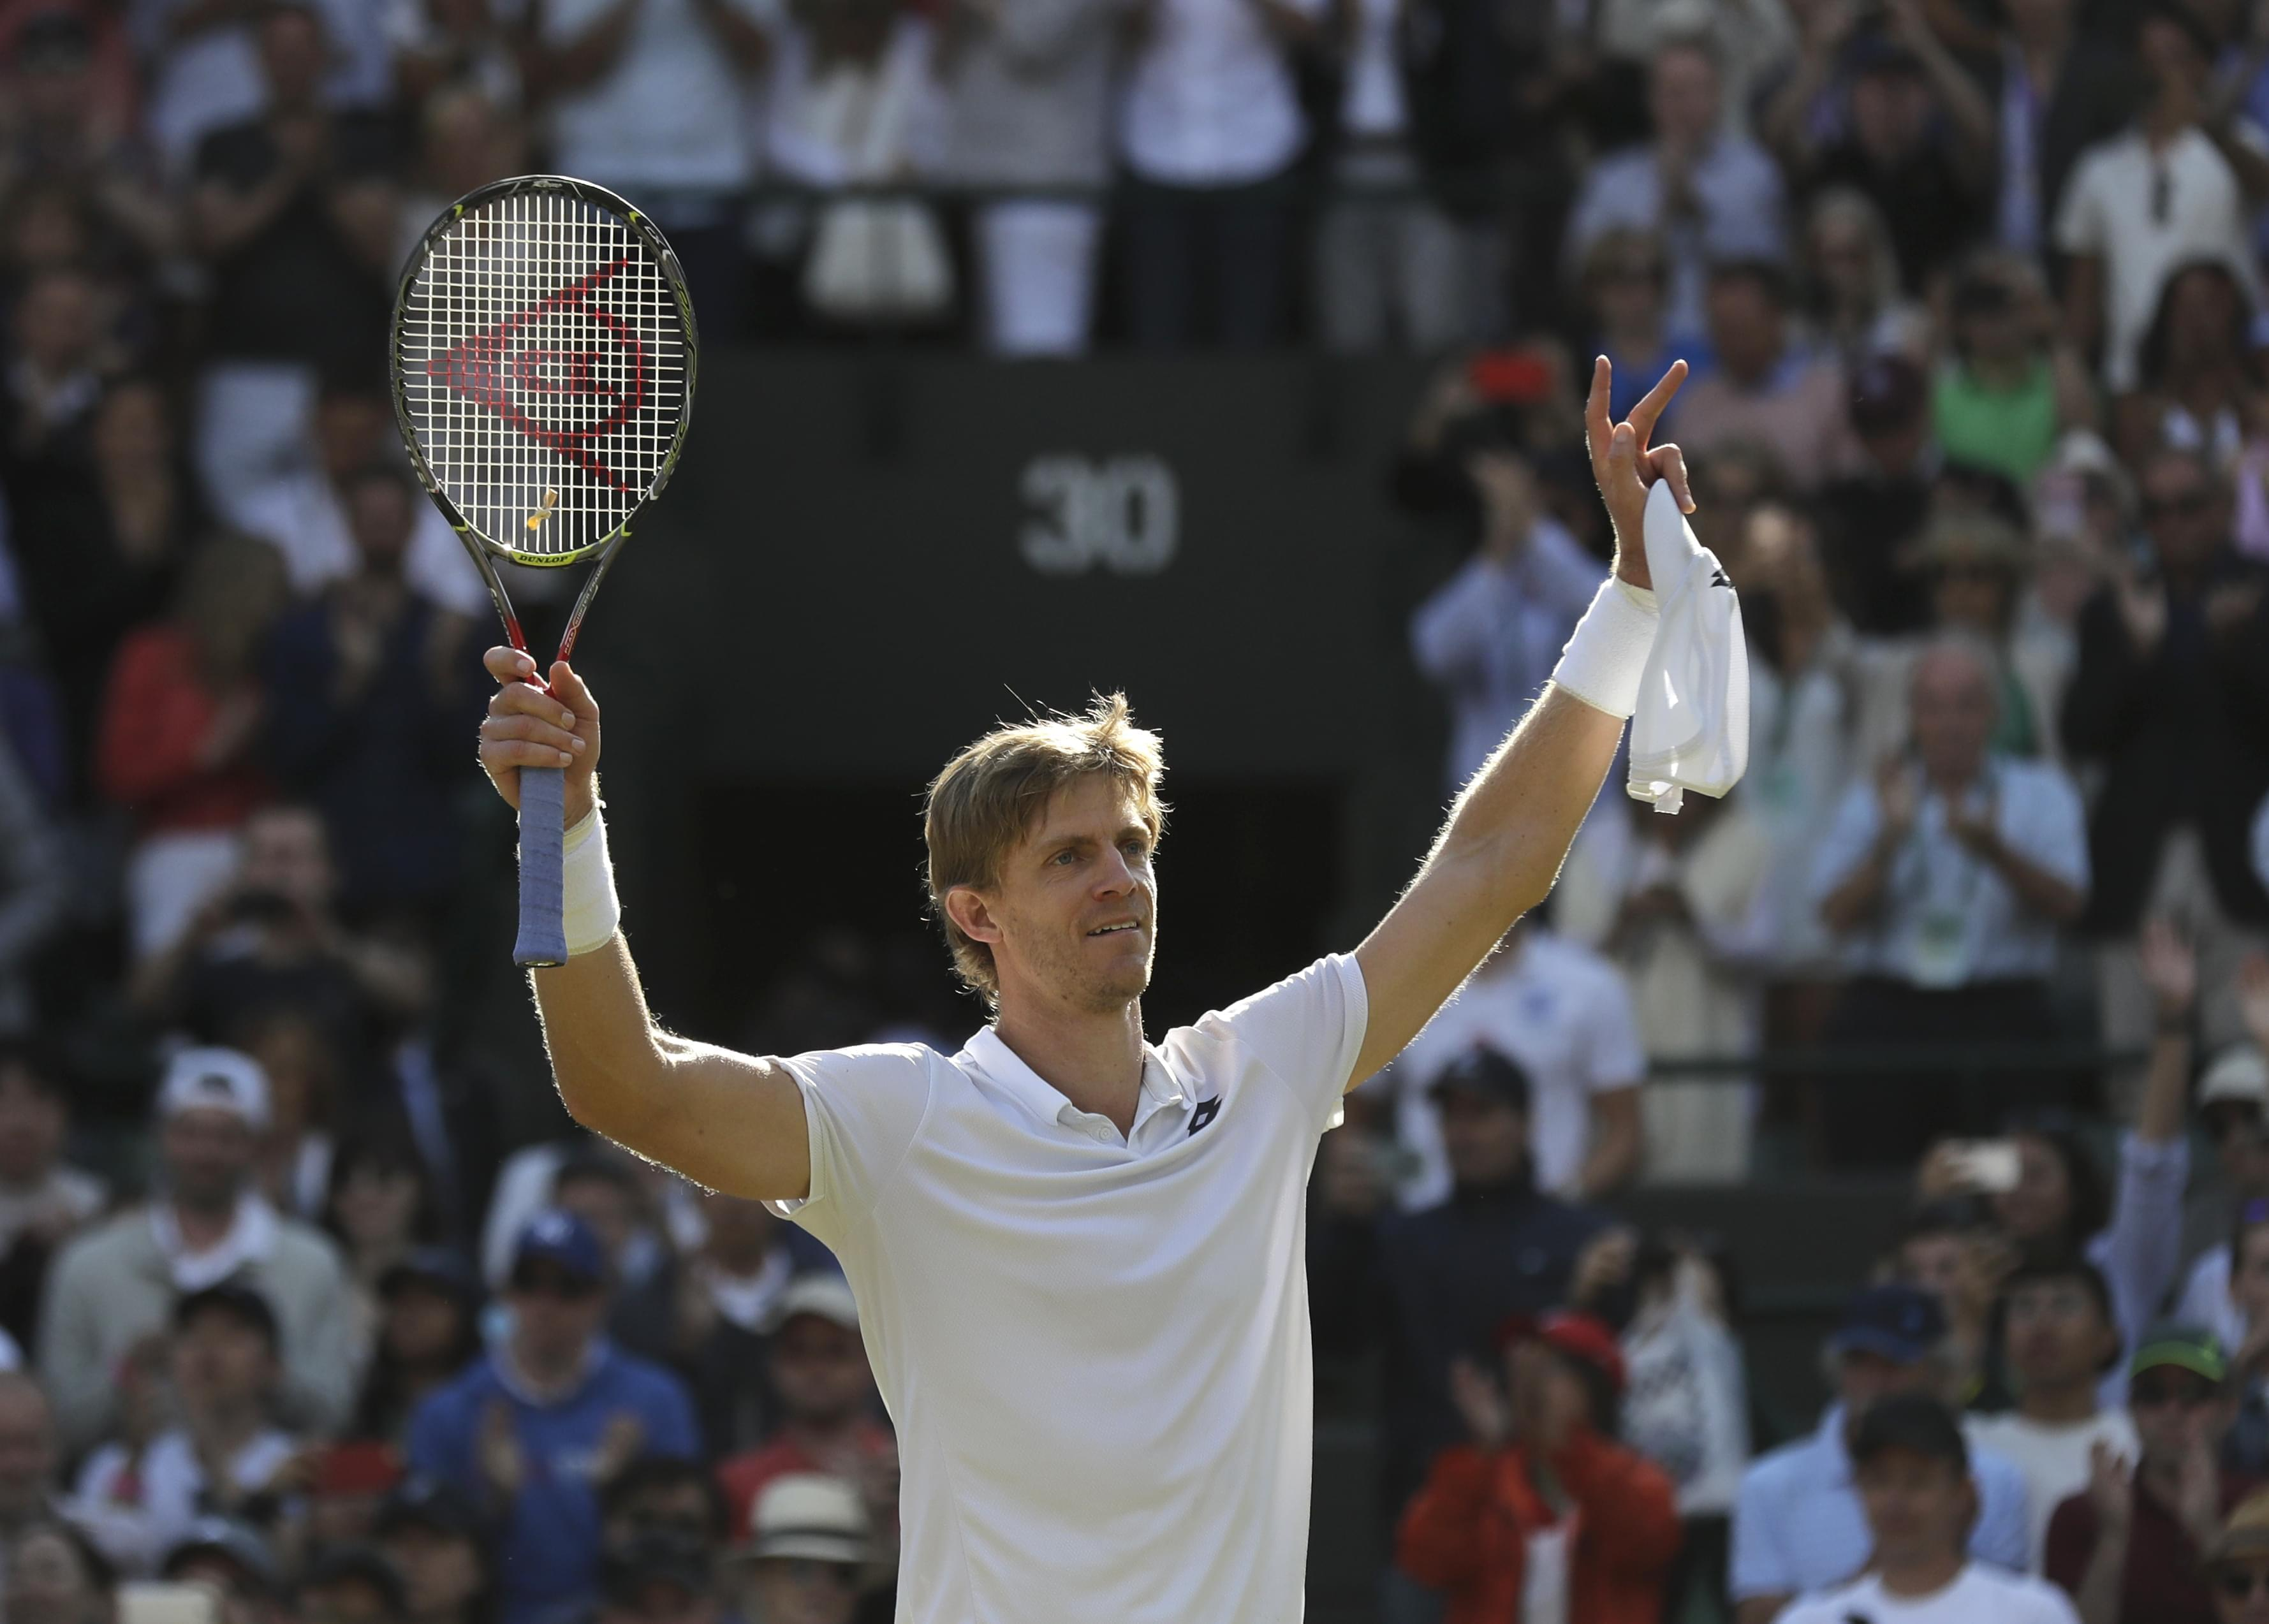 Kevin Anderson of South Africa celebrates winning his men's quarterfinals match against Switzerland's Roger Federer, at the Wimbledon Tennis Championships, in London, Wednesday July 11, 2018.